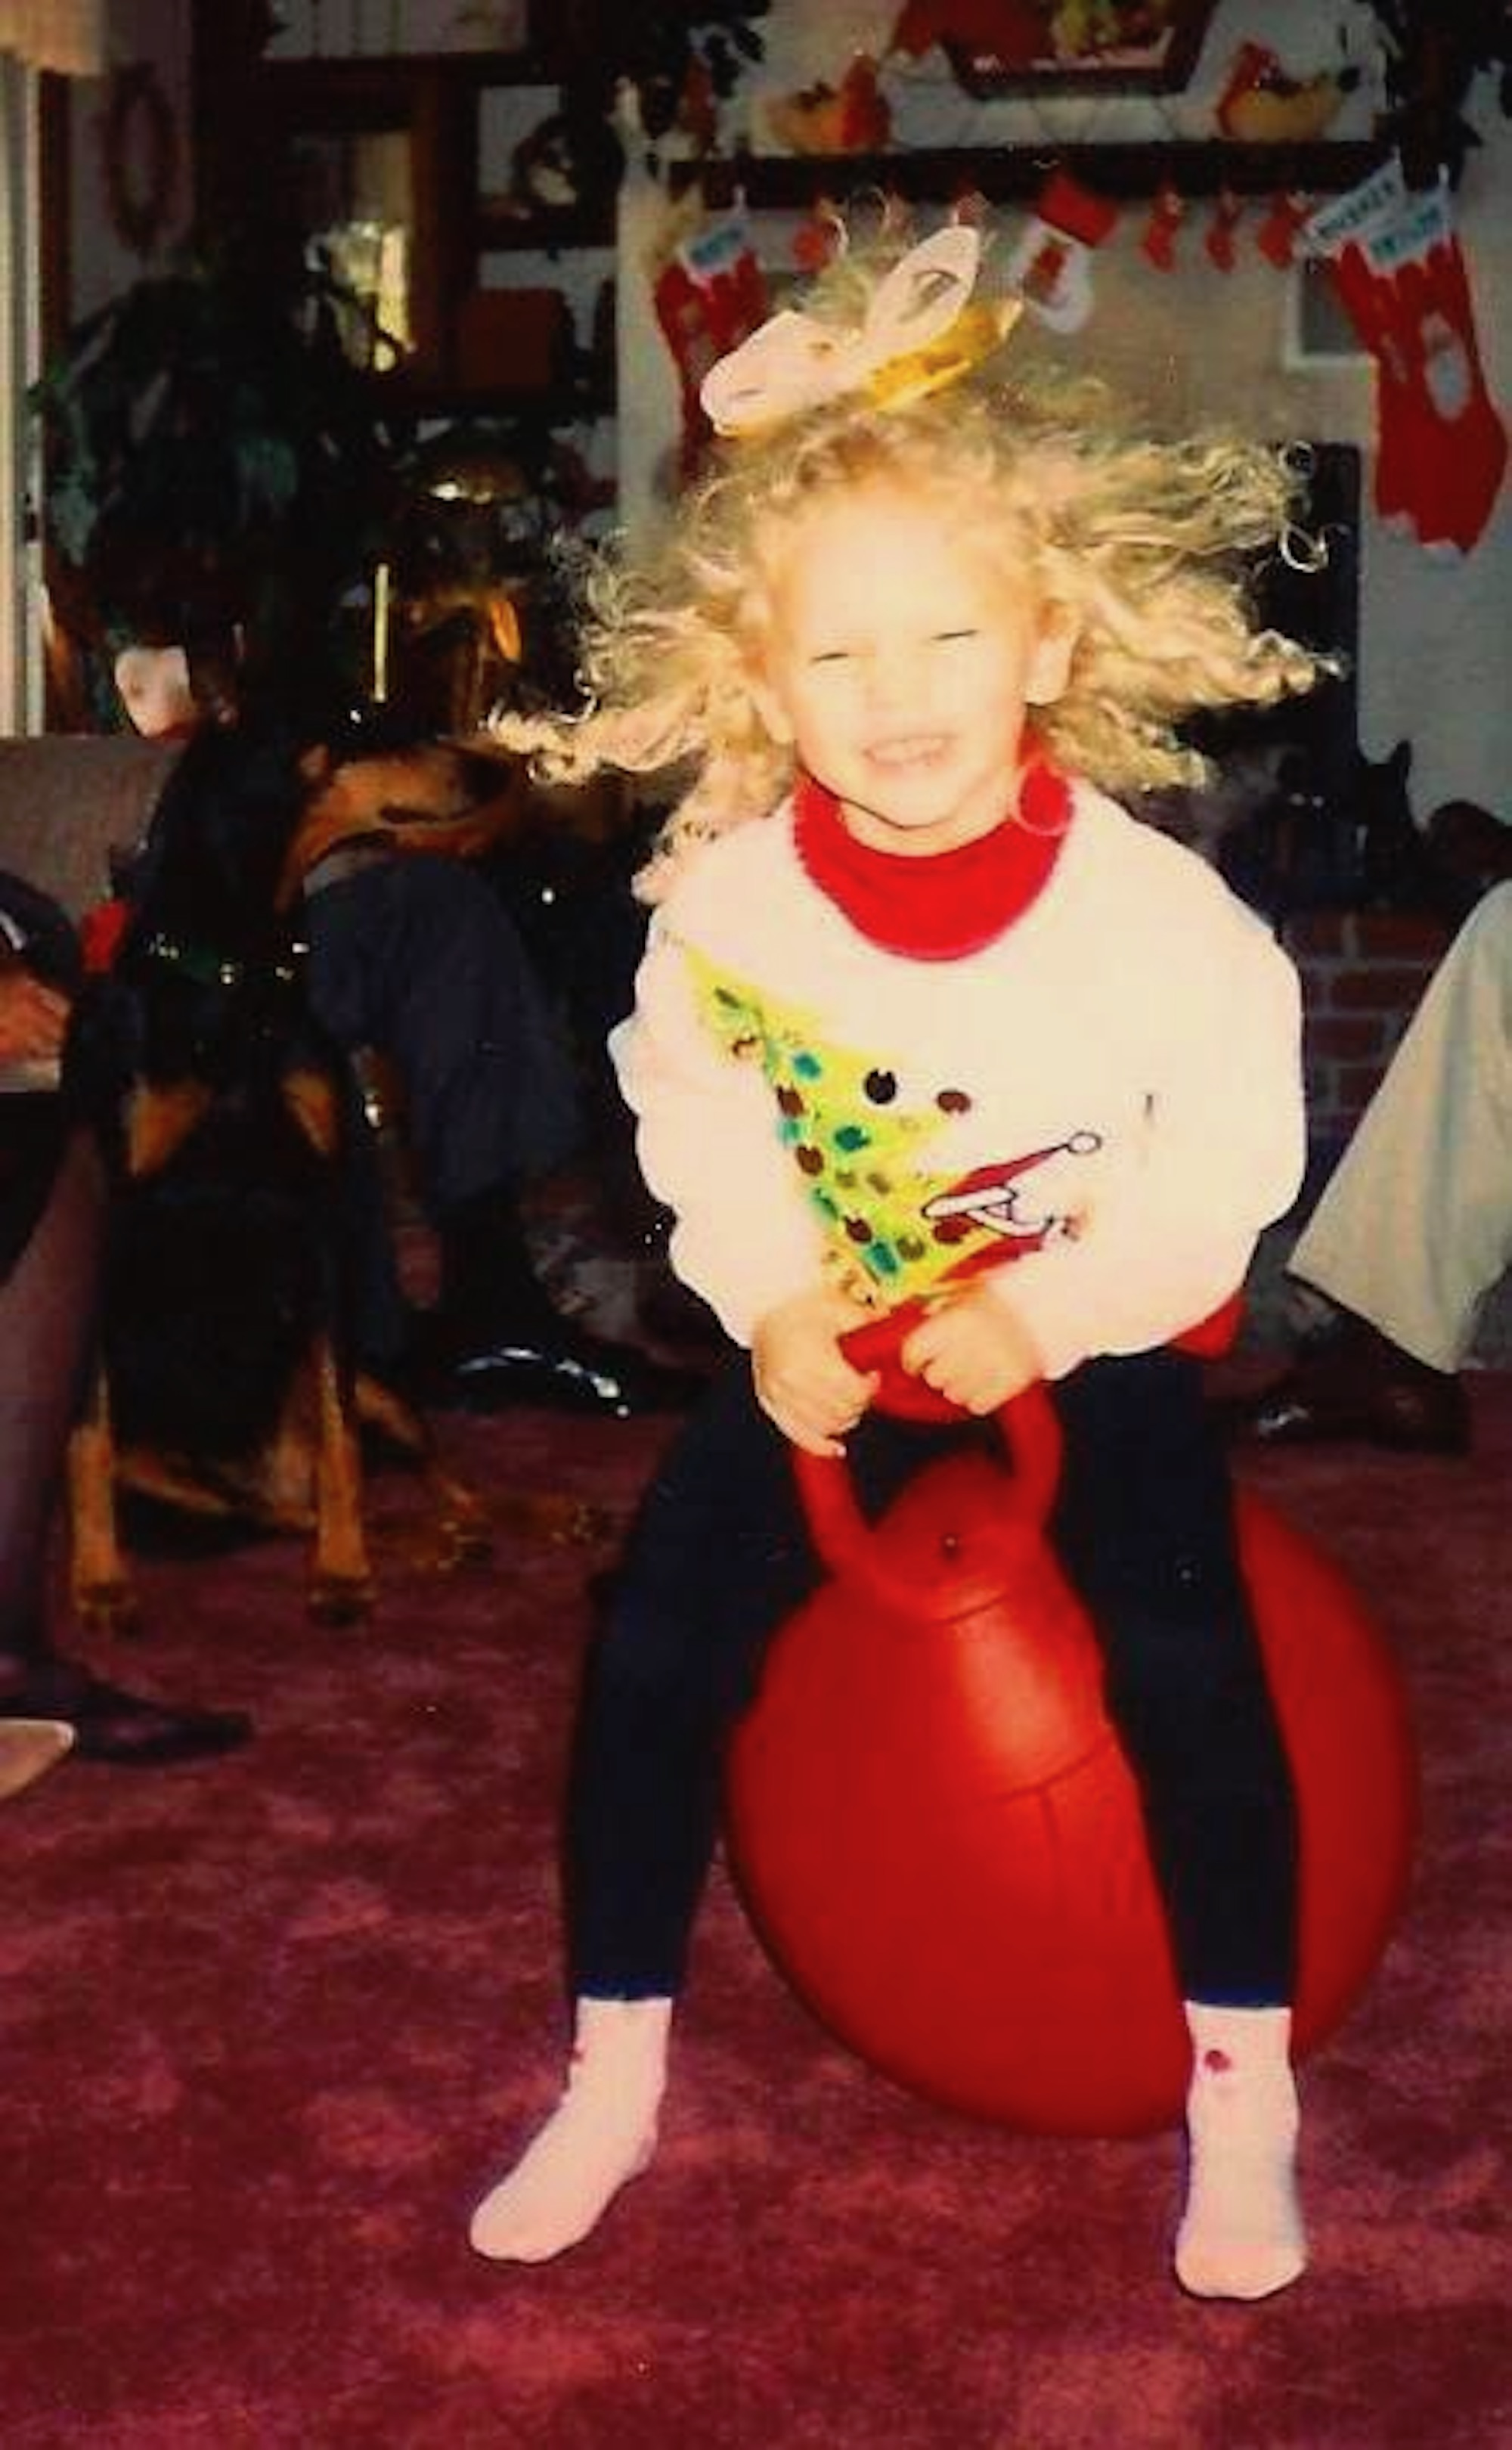 Taylor Swift Christmas Tree Farm childhood photo